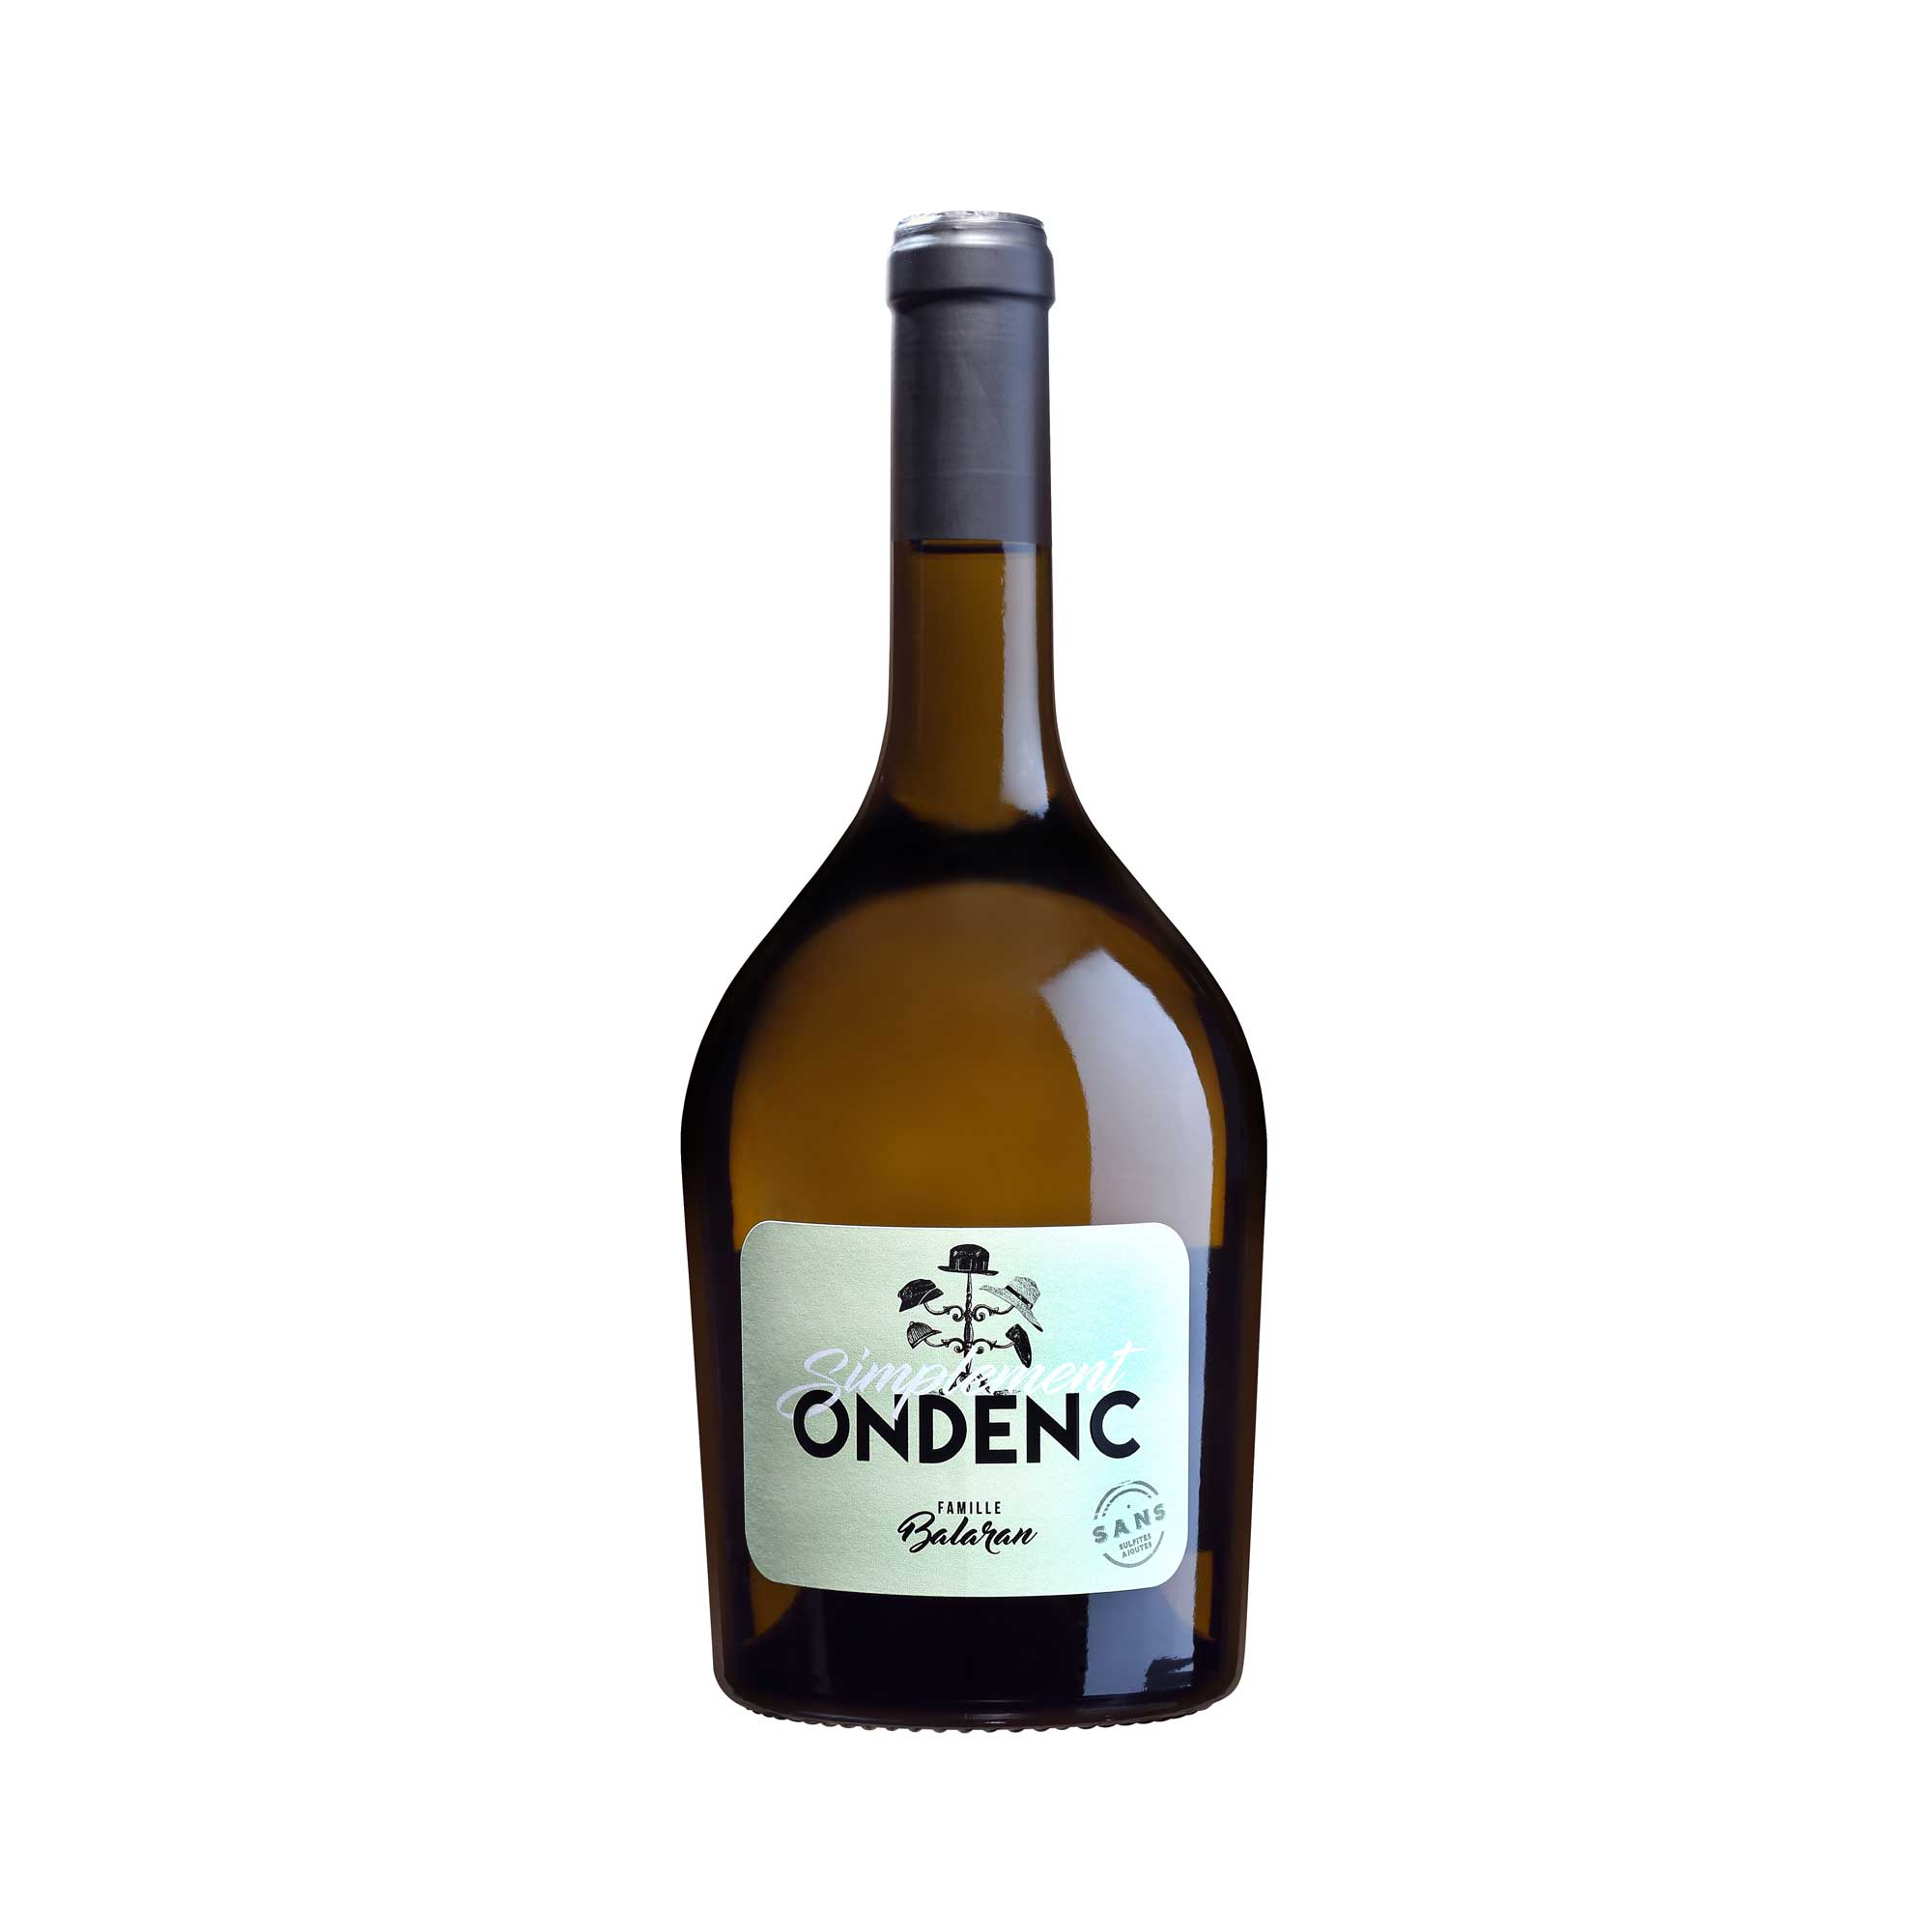 SIMPLEMENT ONDENC (2017)